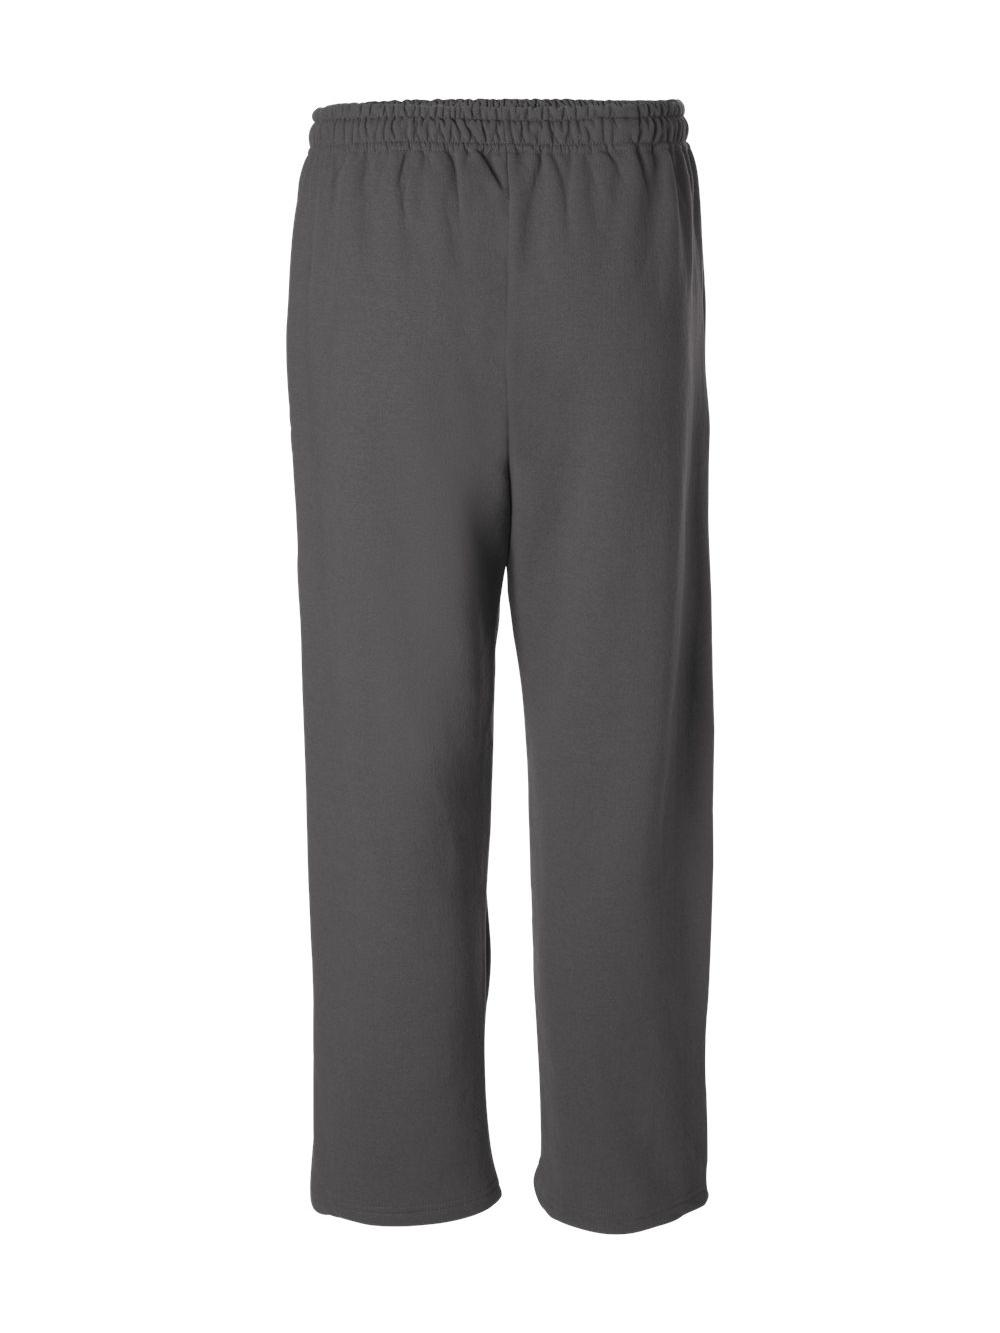 Gildan-Heavy-Blend-Open-Bottom-Sweatpants-18400 thumbnail 10